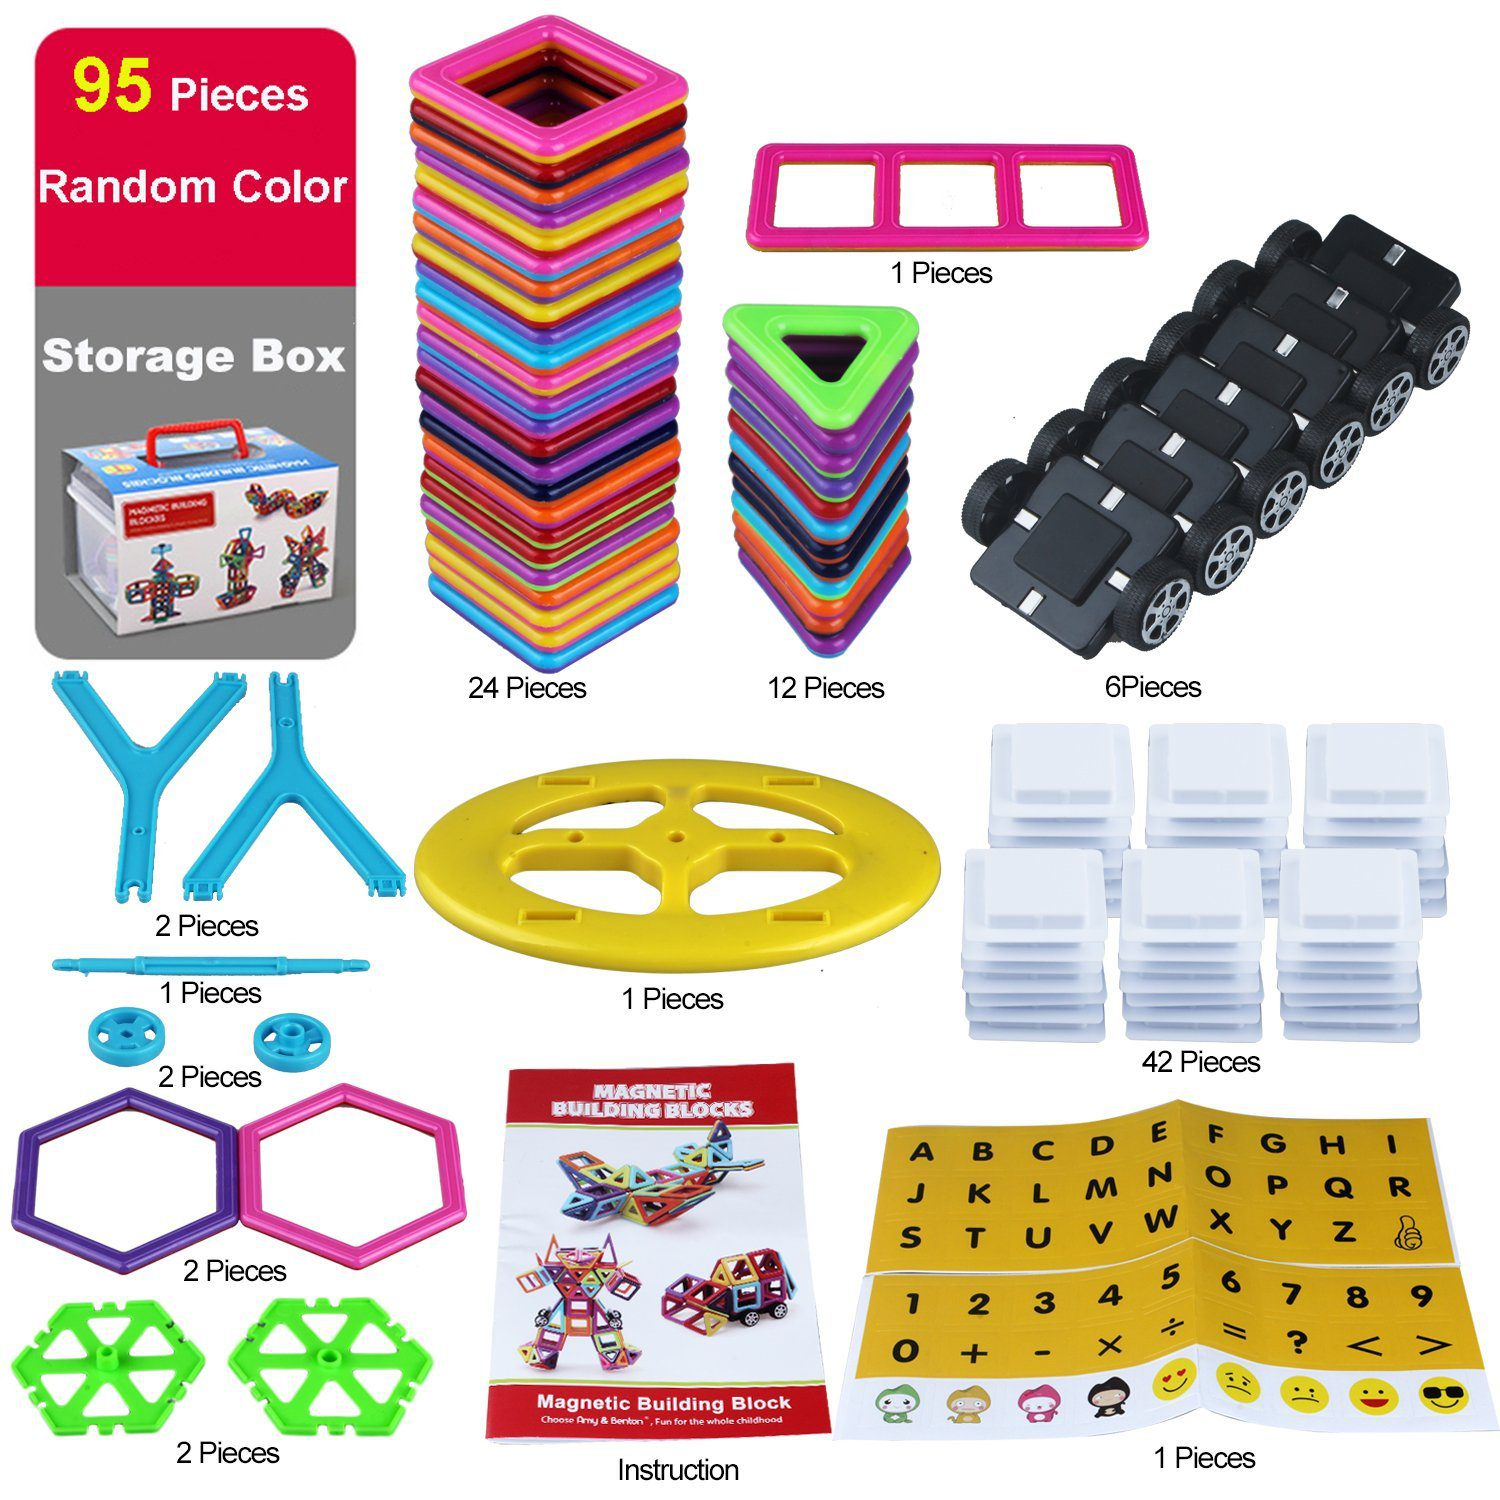 95 Pieces Magnetic Stacking Blocks 4